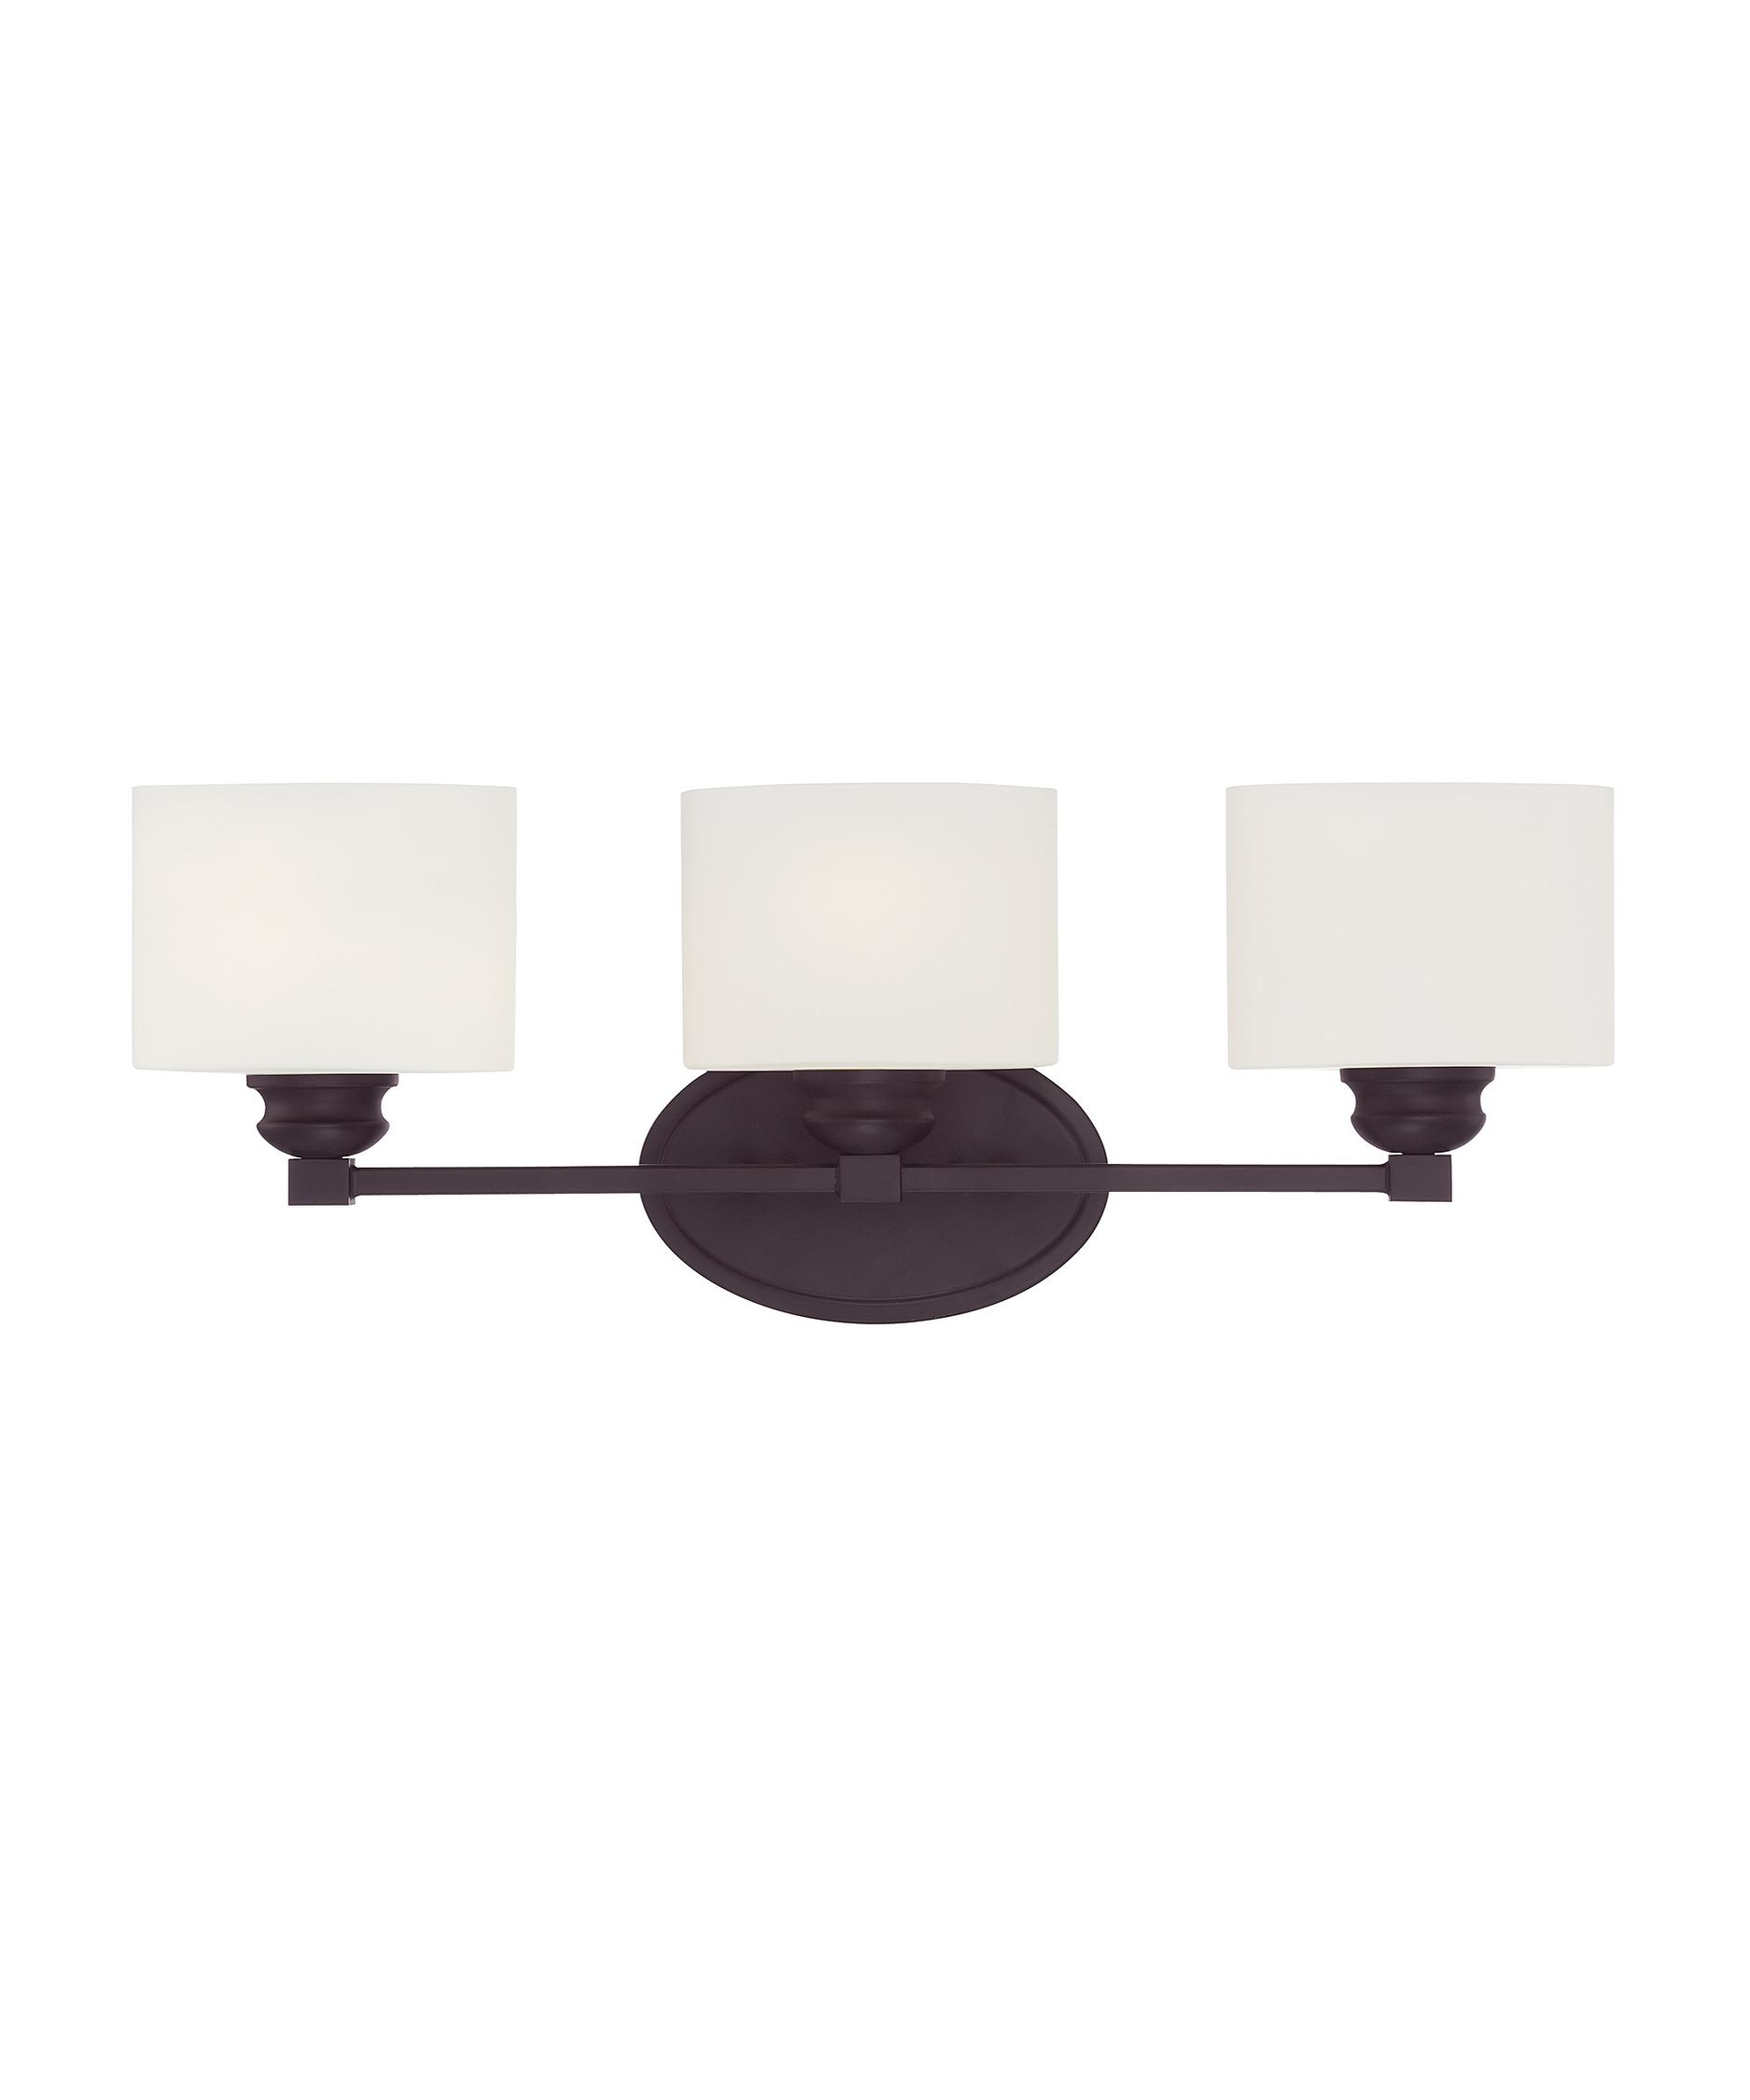 Kane 24 Inch Wide Bath Vanity Light